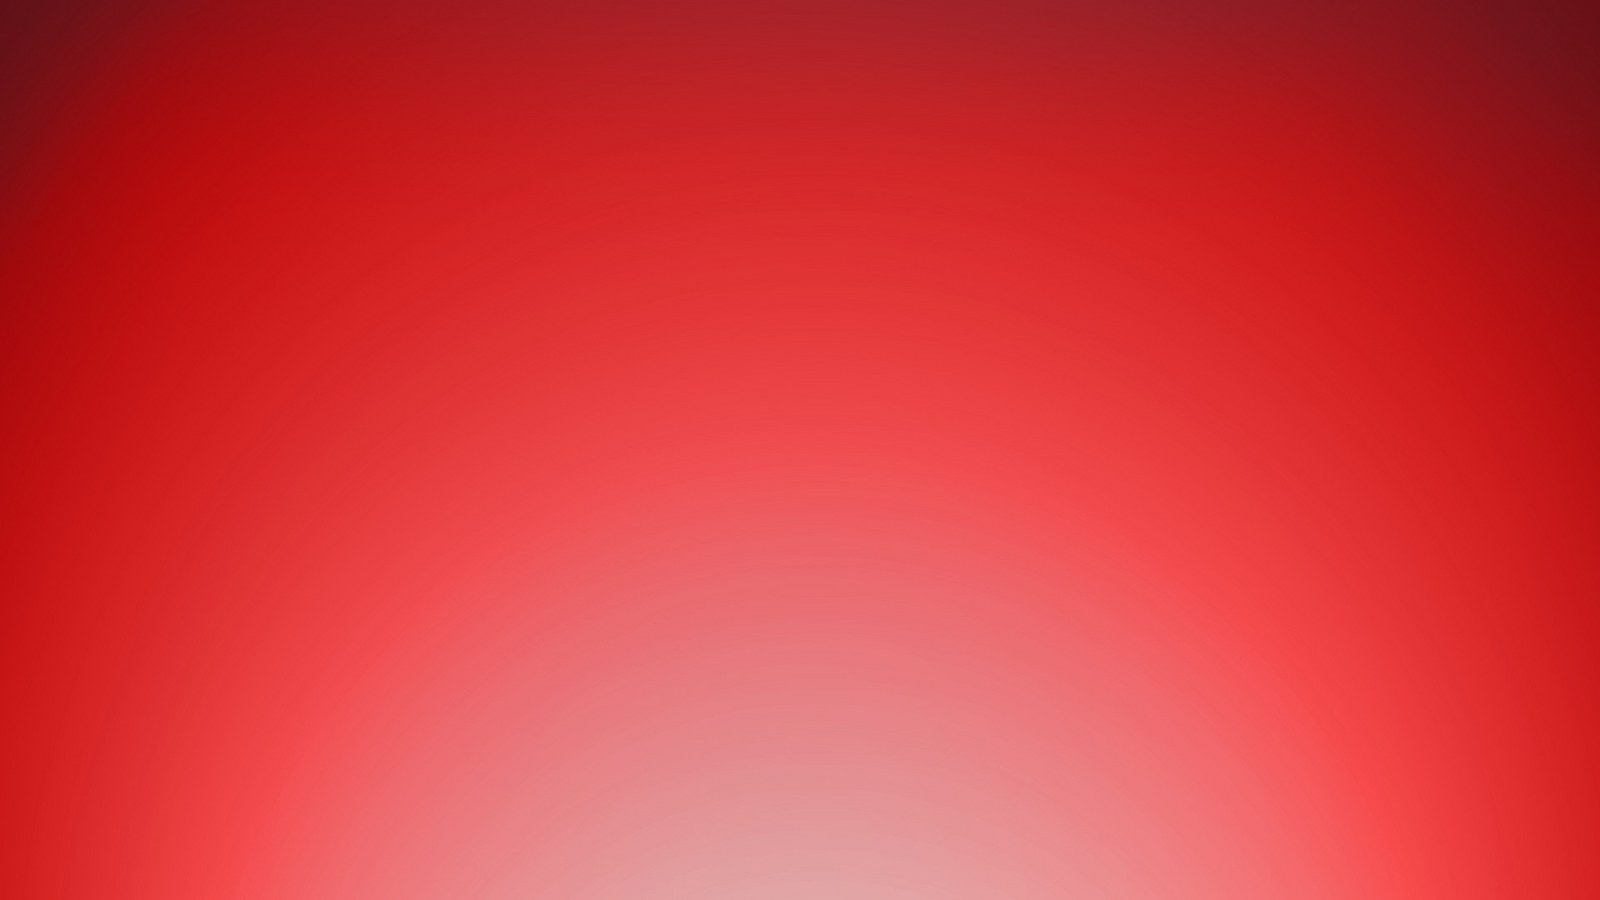 Free Download Red Background Hd Wallpapers Download Red